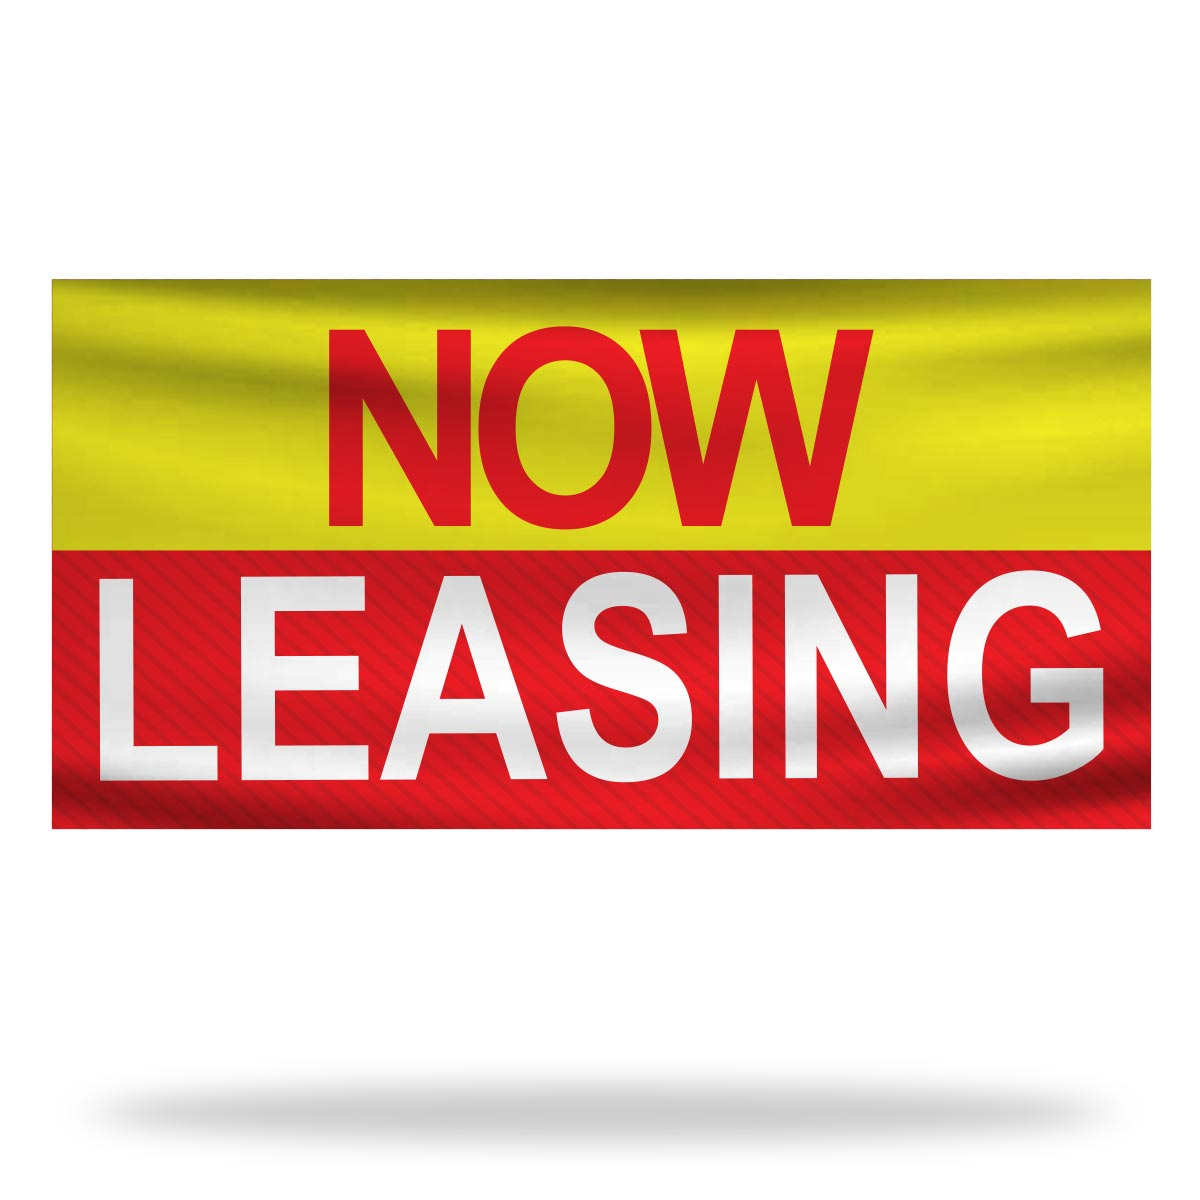 Now Leasing Flags & Banners Design 04